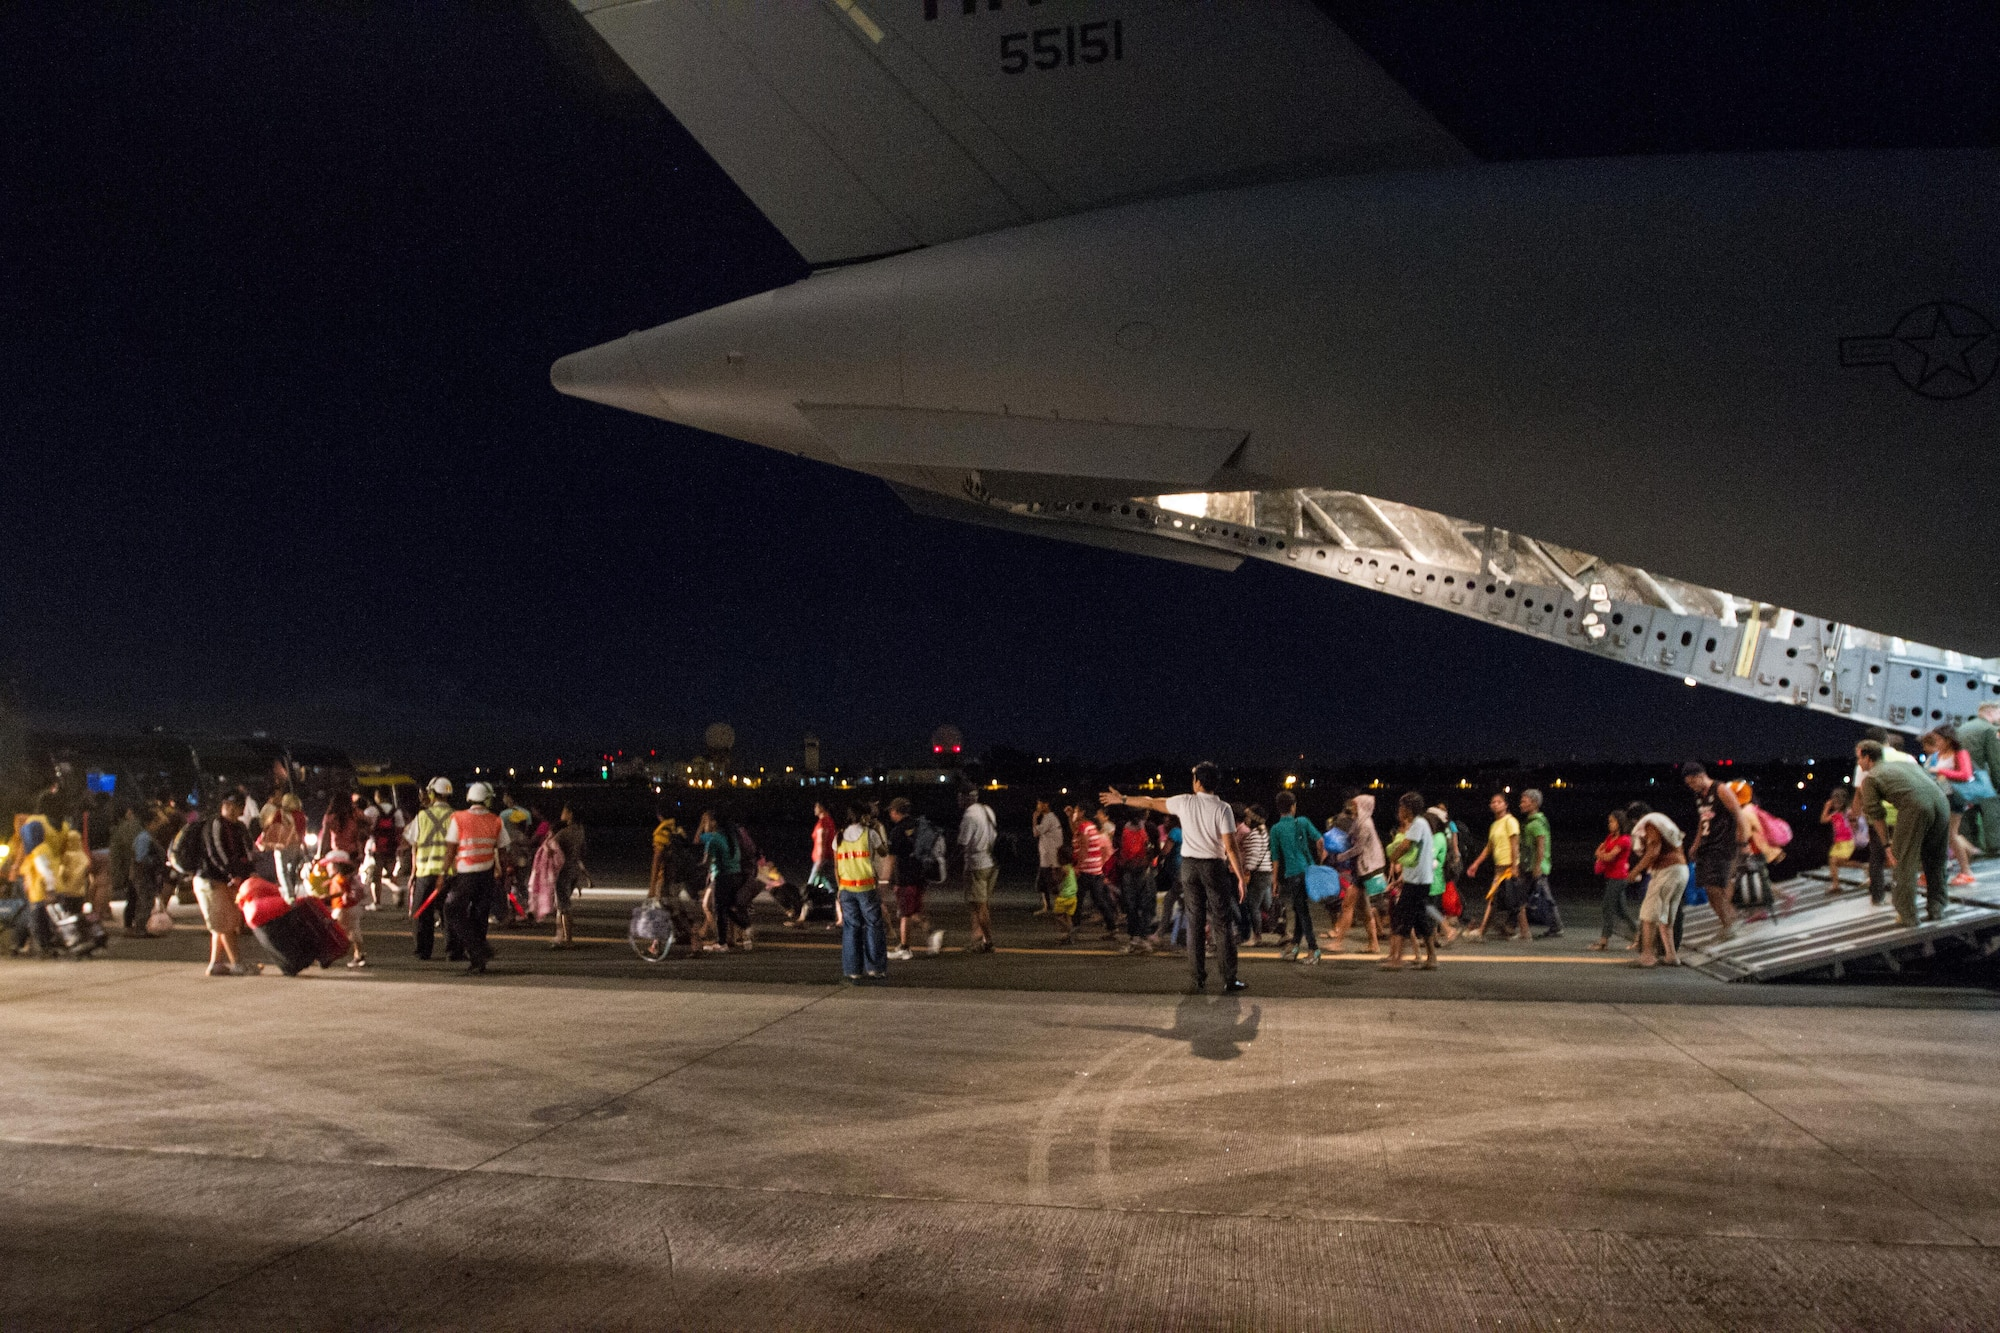 Displaced residents from Tacloban, Philippines, exit a C-17 Globemaster III after being evacuated to Manila Nov. 17, 2013 during Operation Damayan. The aircrew, deployed from Joint Base Pearl Harbor-Hickam, Hawaii, aided in the successful rescue of 1,177 evacuees while flying humanitarian missions in support of humanitarian assistance and disaster relief effort following Super Typhoon Haiyan. The 535th Airlift Squadron C-17 is one of two deployed to the region. (U.S. Air Force Photo/Staff Sgt. Ramon Brockington)